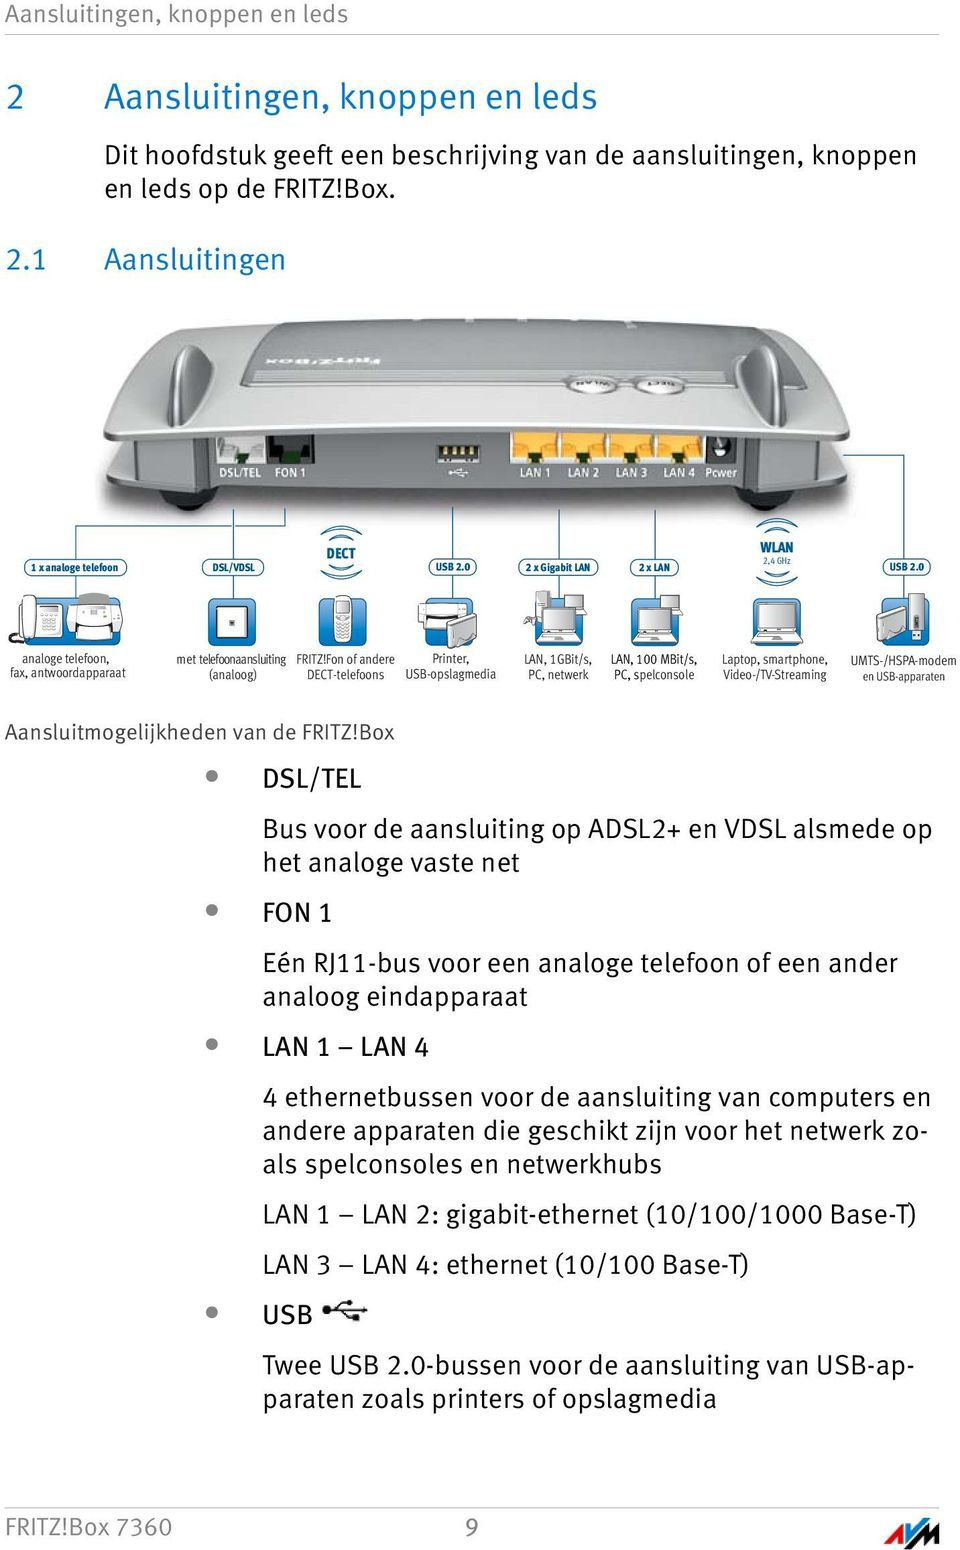 Fon of andere DECT-telefoons Printer, USB-opslagmedia LAN, 1GBit/s, PC, netwerk LAN, 100 MBit/s, PC, spelconsole Laptop, smartphone, Video-/TV-Streaming UMTS-/HSPA-modem en USB-apparaten